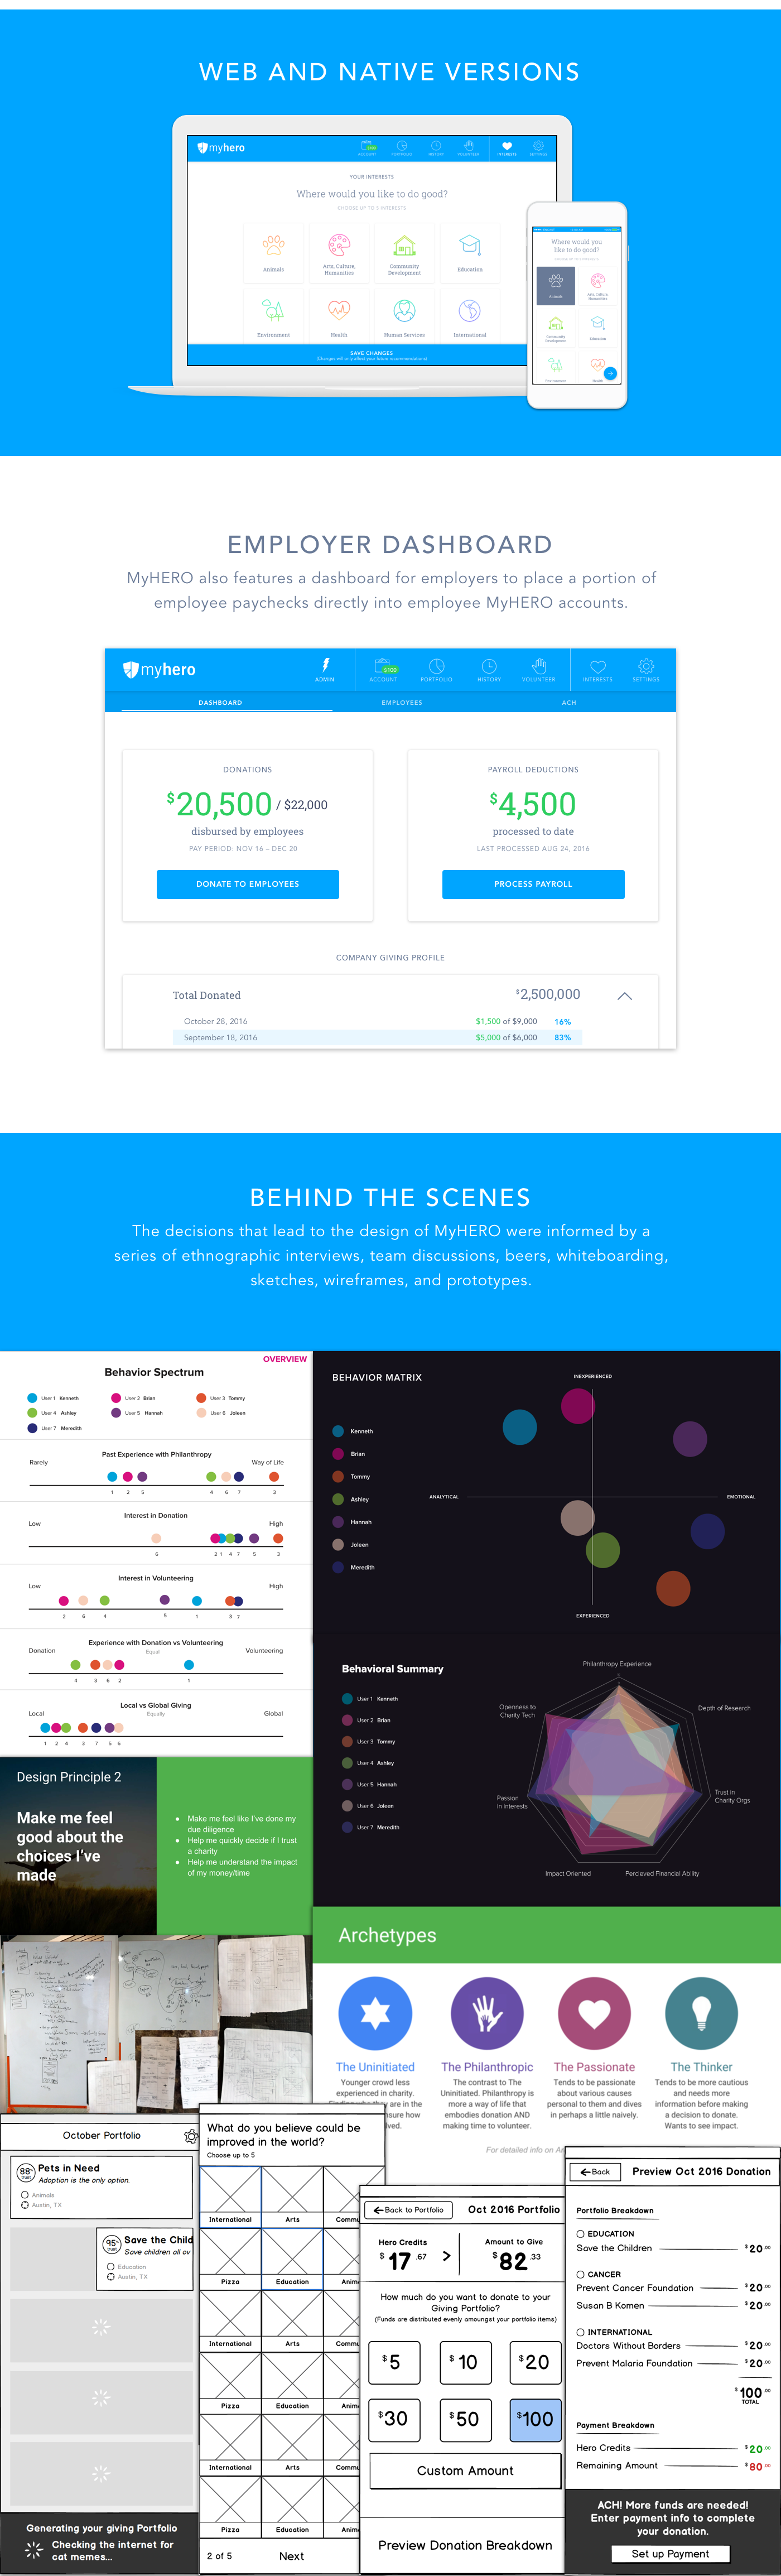 Interaction design  user experience graphic design  app charity nonprofit